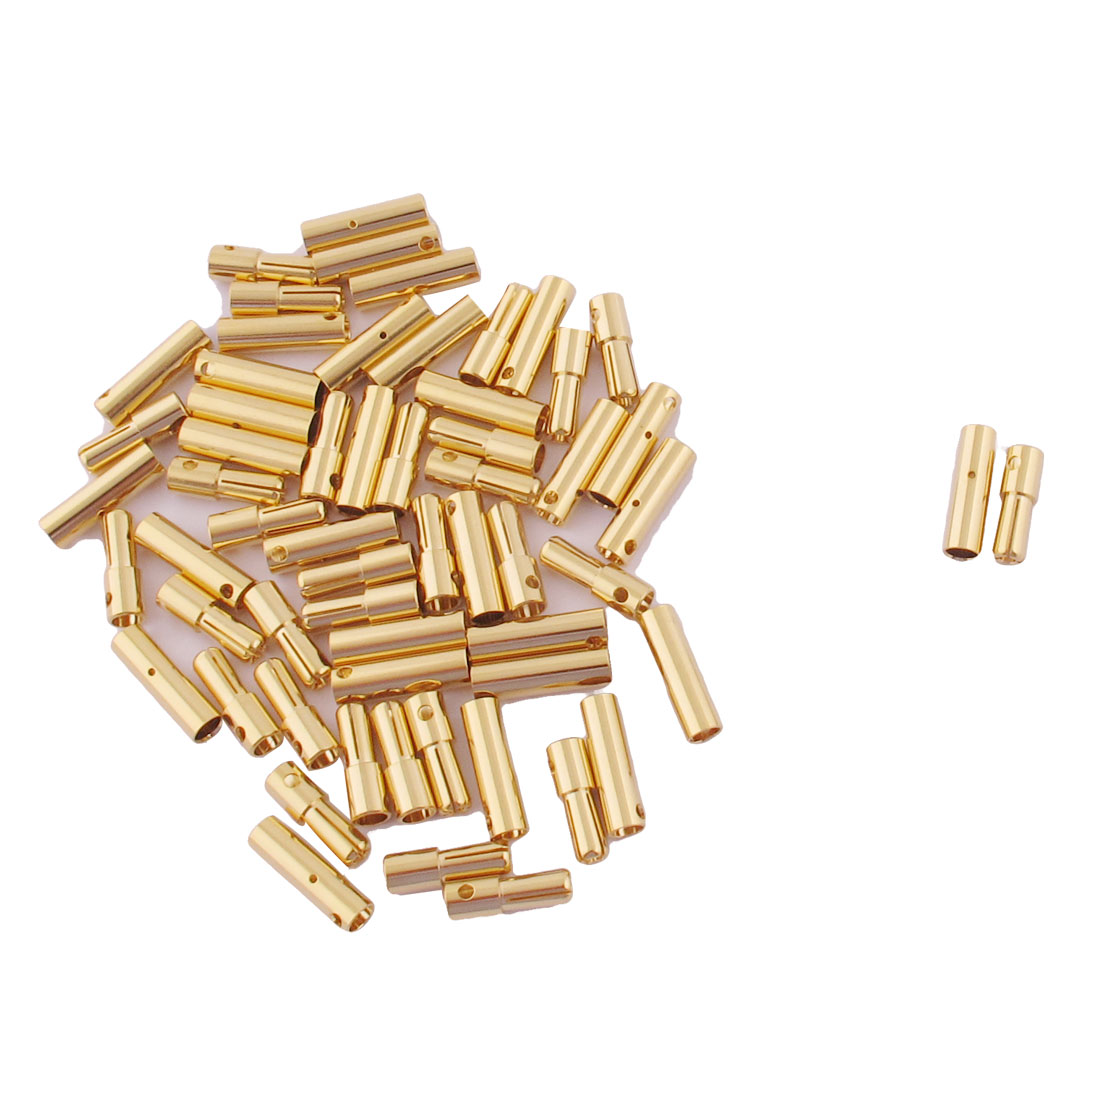 ESC RC LiPo Battery 4mm Male Female Banana Connector Gold Tone 30 Pairs